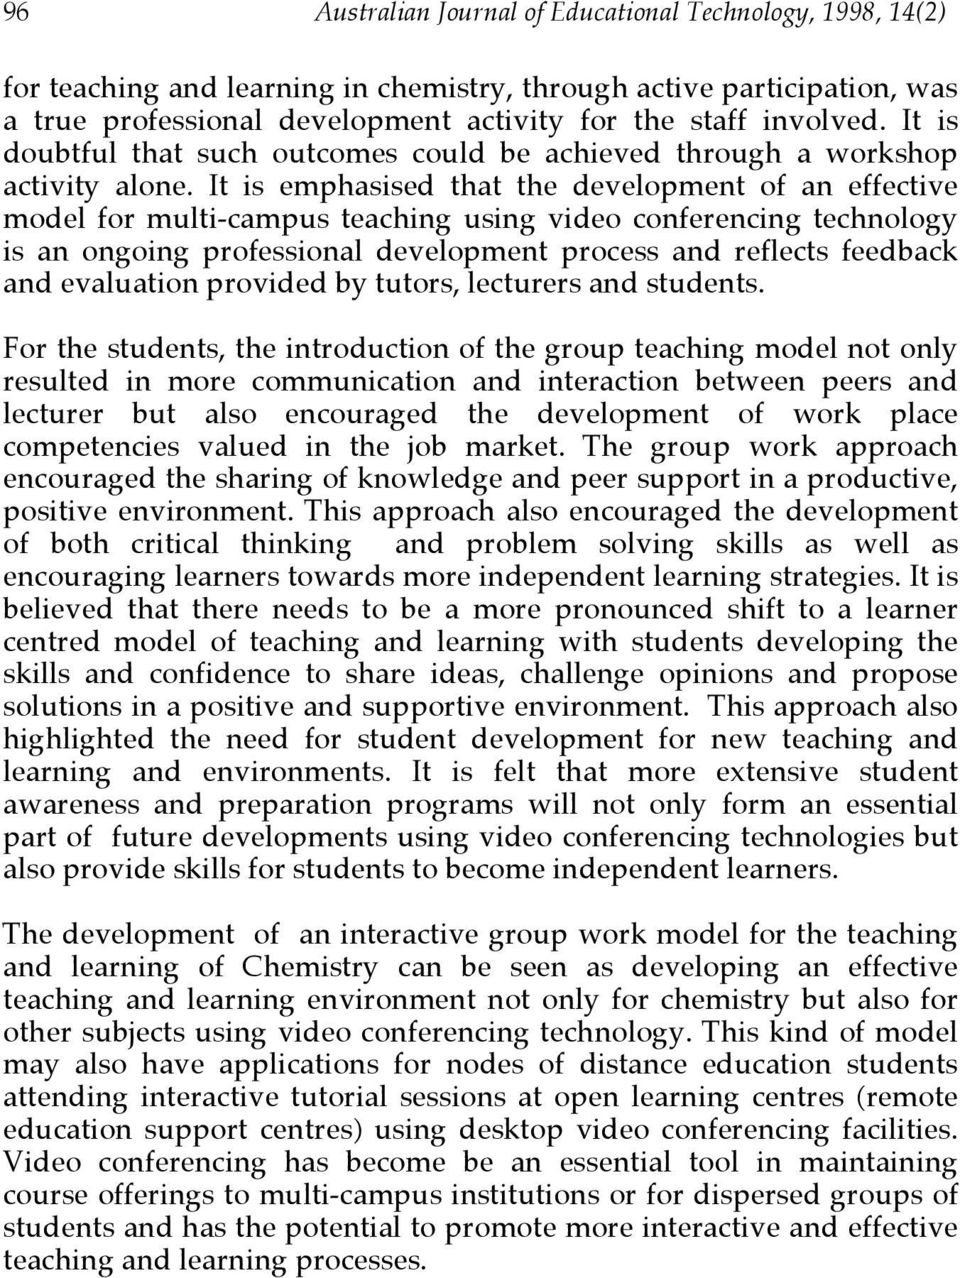 It is emphasised that the development of an effective model for multi-campus teaching using video conferencing technology is an ongoing professional development process and reflects feedback and